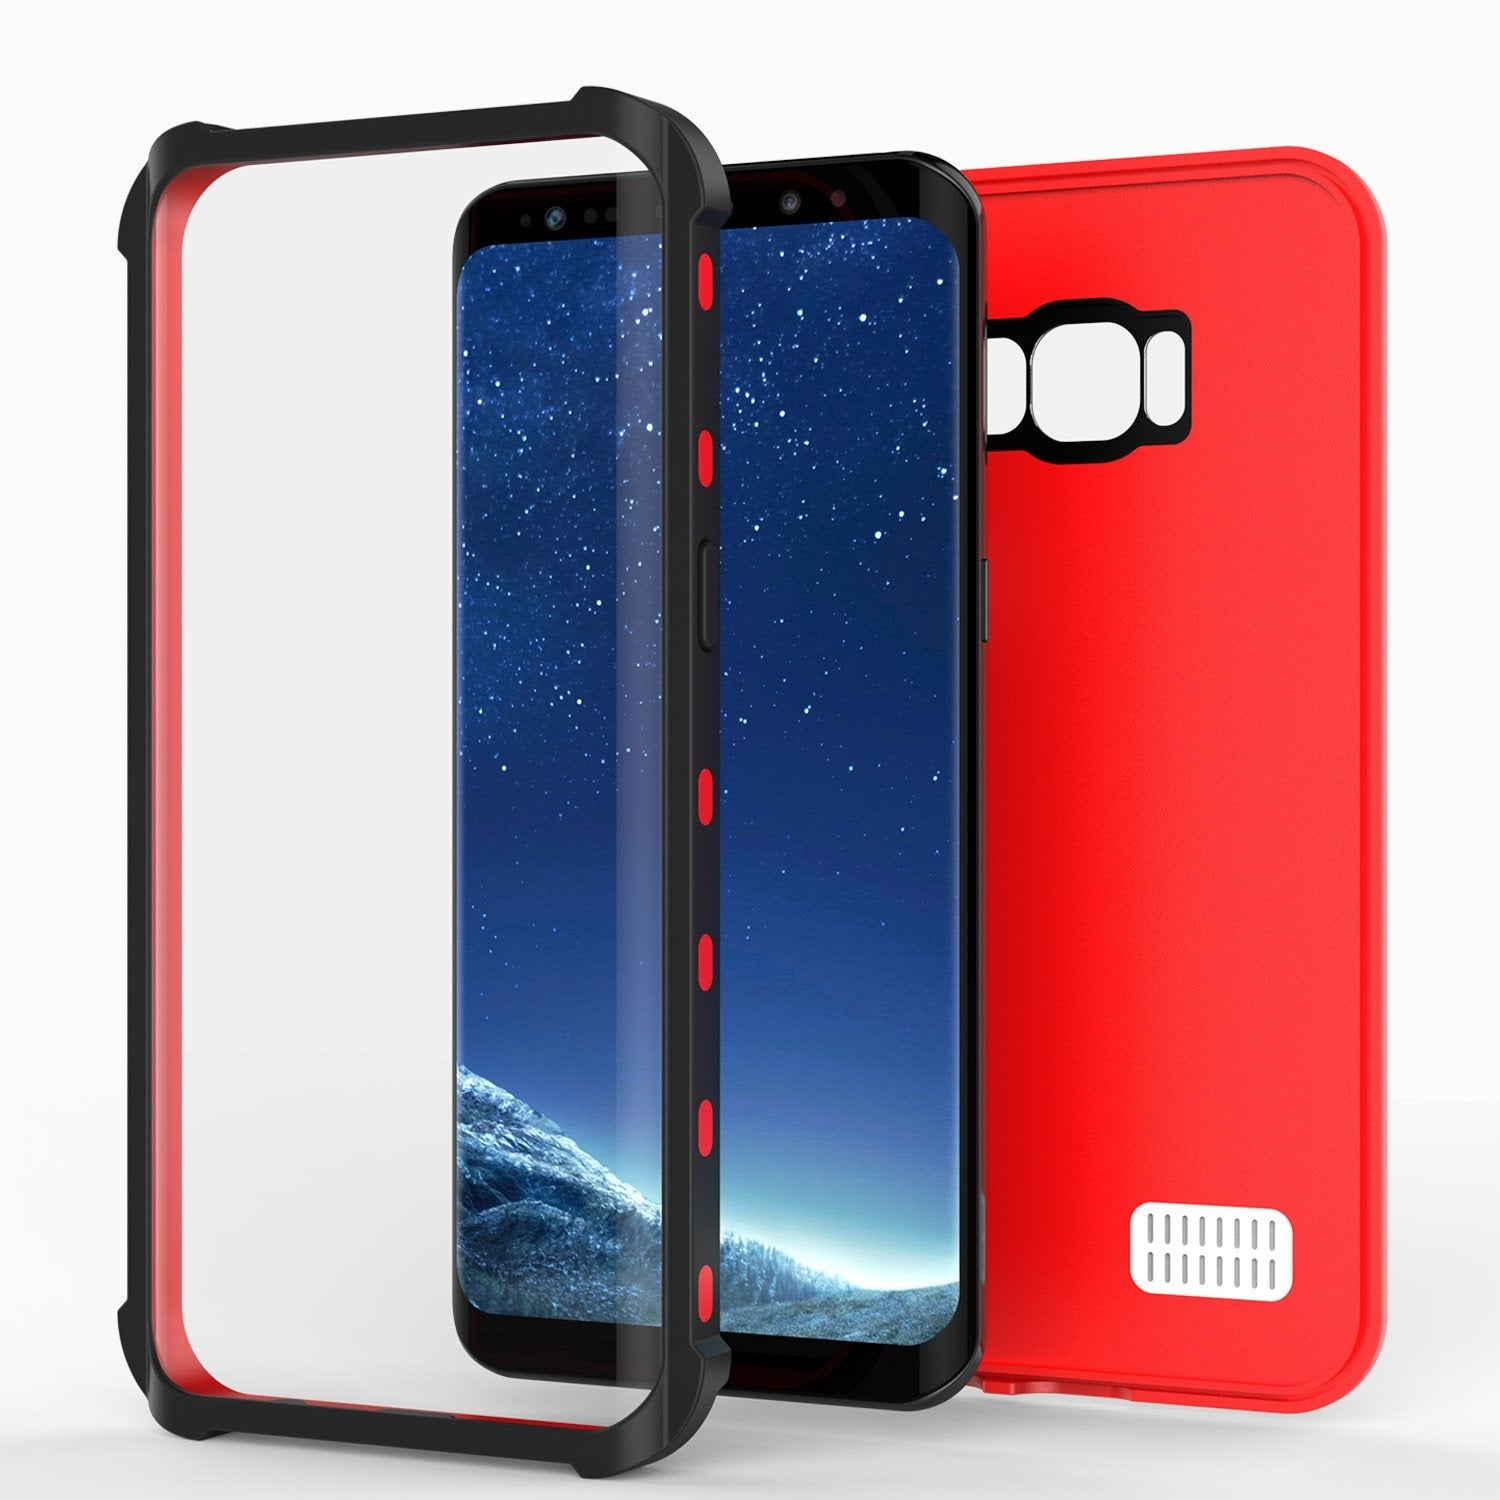 Galaxy S8 Plus Waterproof Case, Punkcase [KickStud Series] [Slim Fit] [IP68 Certified] [Shockproof] [Snowproof] Armor Cover [RED]